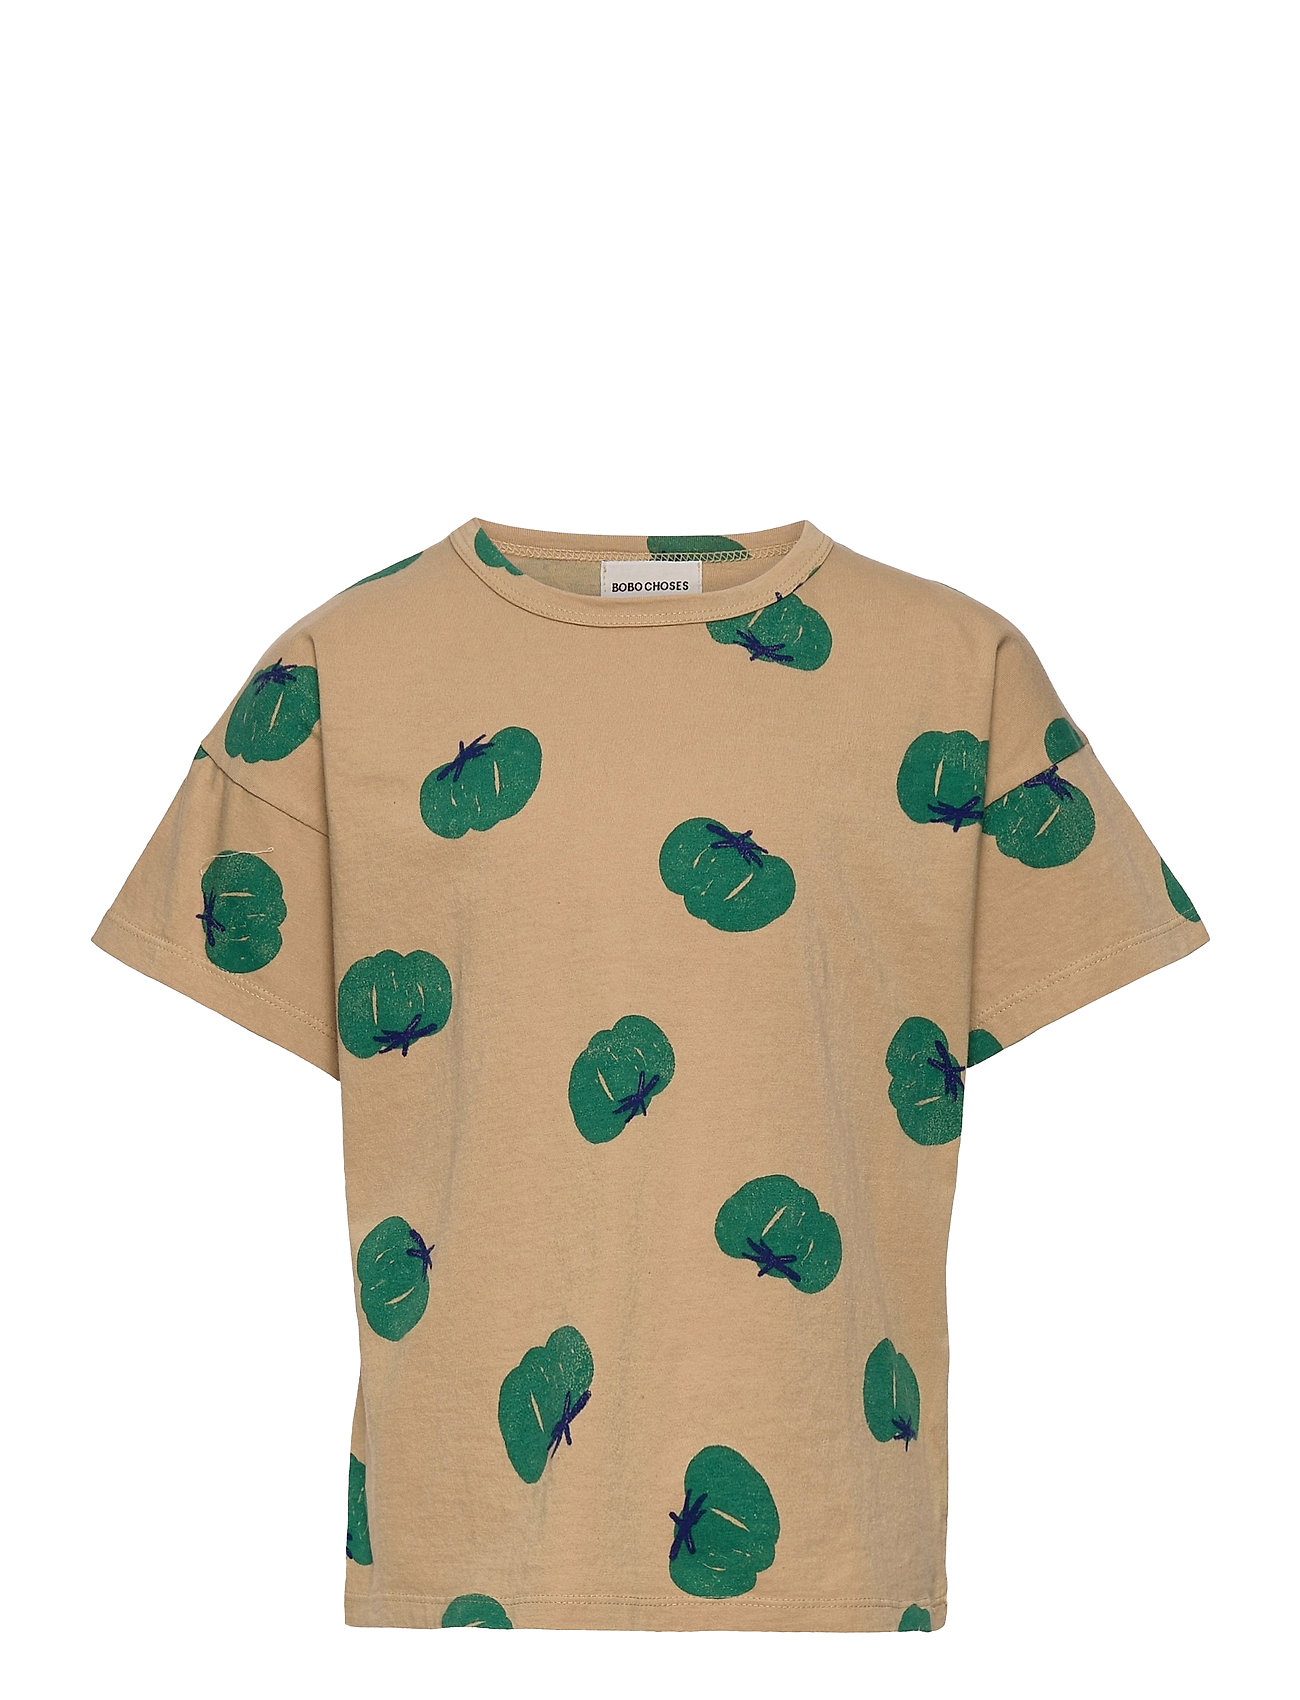 Image of Tomatoes All Over Short Sleeve T-Shirt T-shirt Grøn Bobo Choses (3493273747)